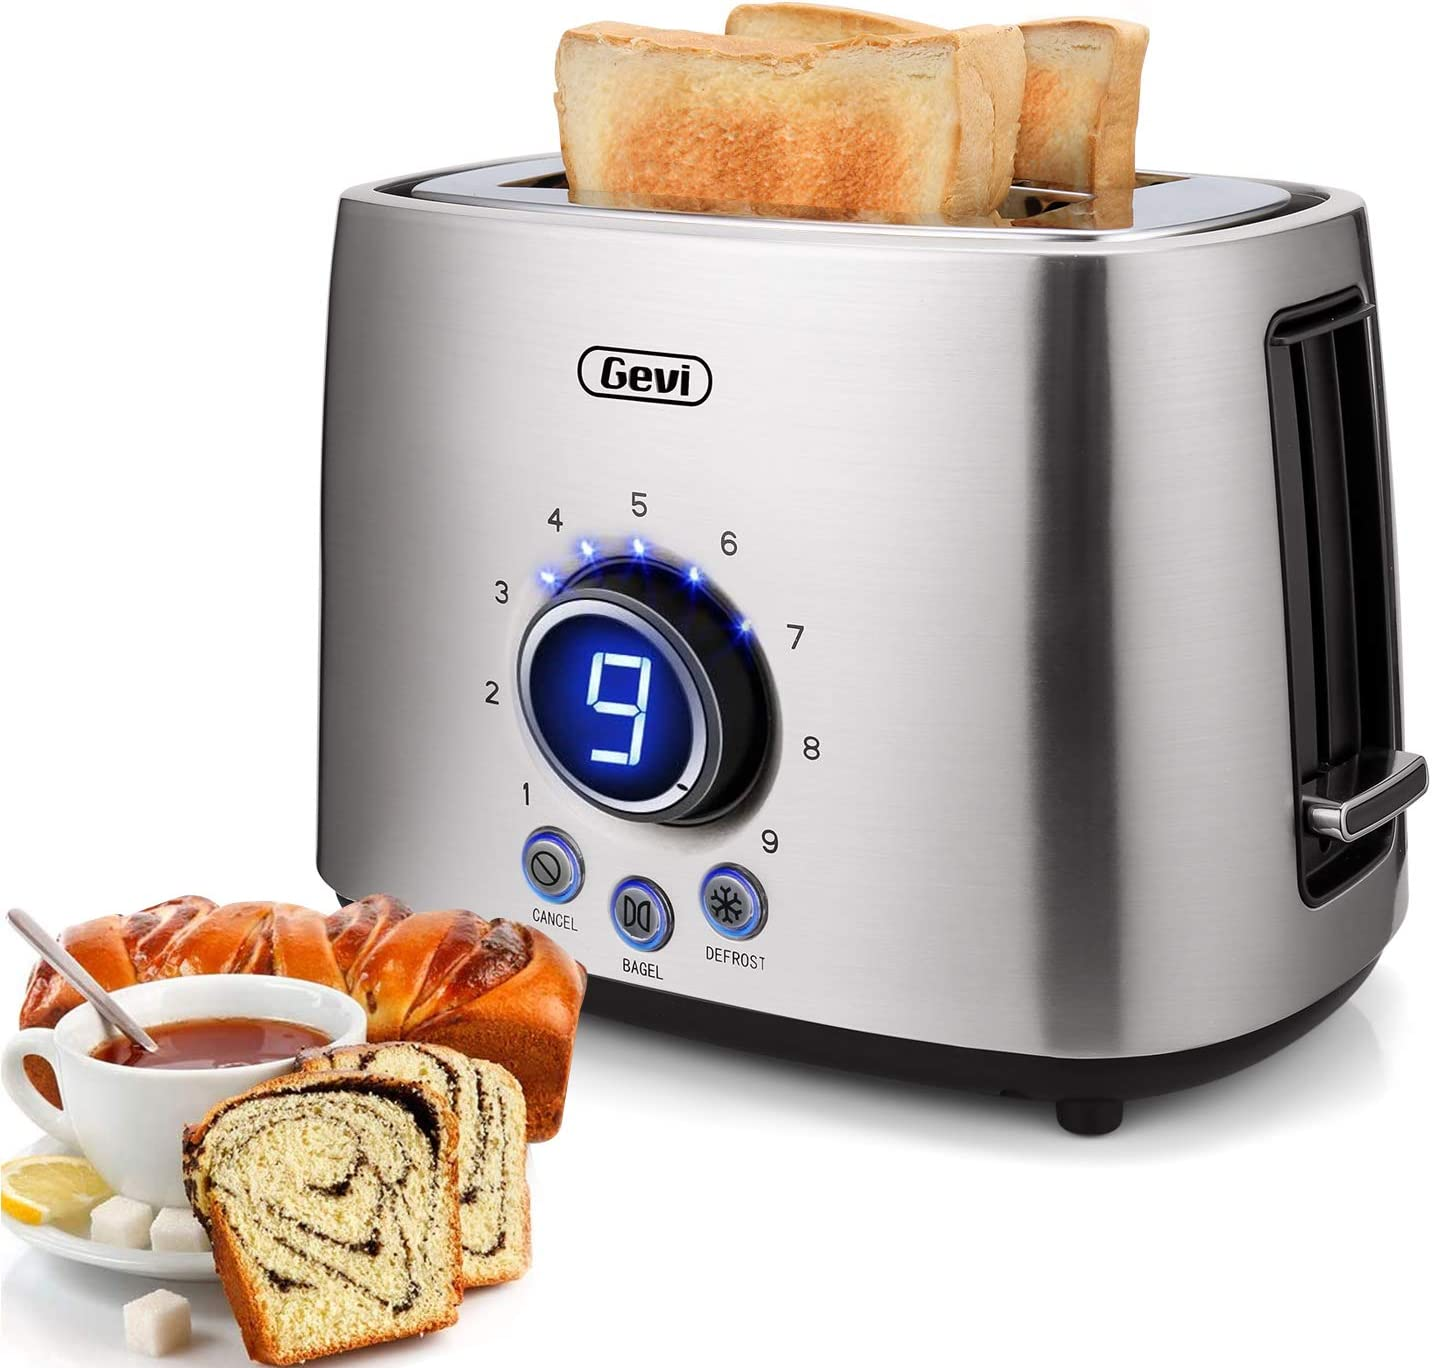 2 Slice Toaster LED Display,9 Shade Stainless Steel Toasters with Cancel, Bagel and Defrost Function, Extra Wide Slots Removable Crumb Trays Compact Toaster,Auto Pop Up,900W